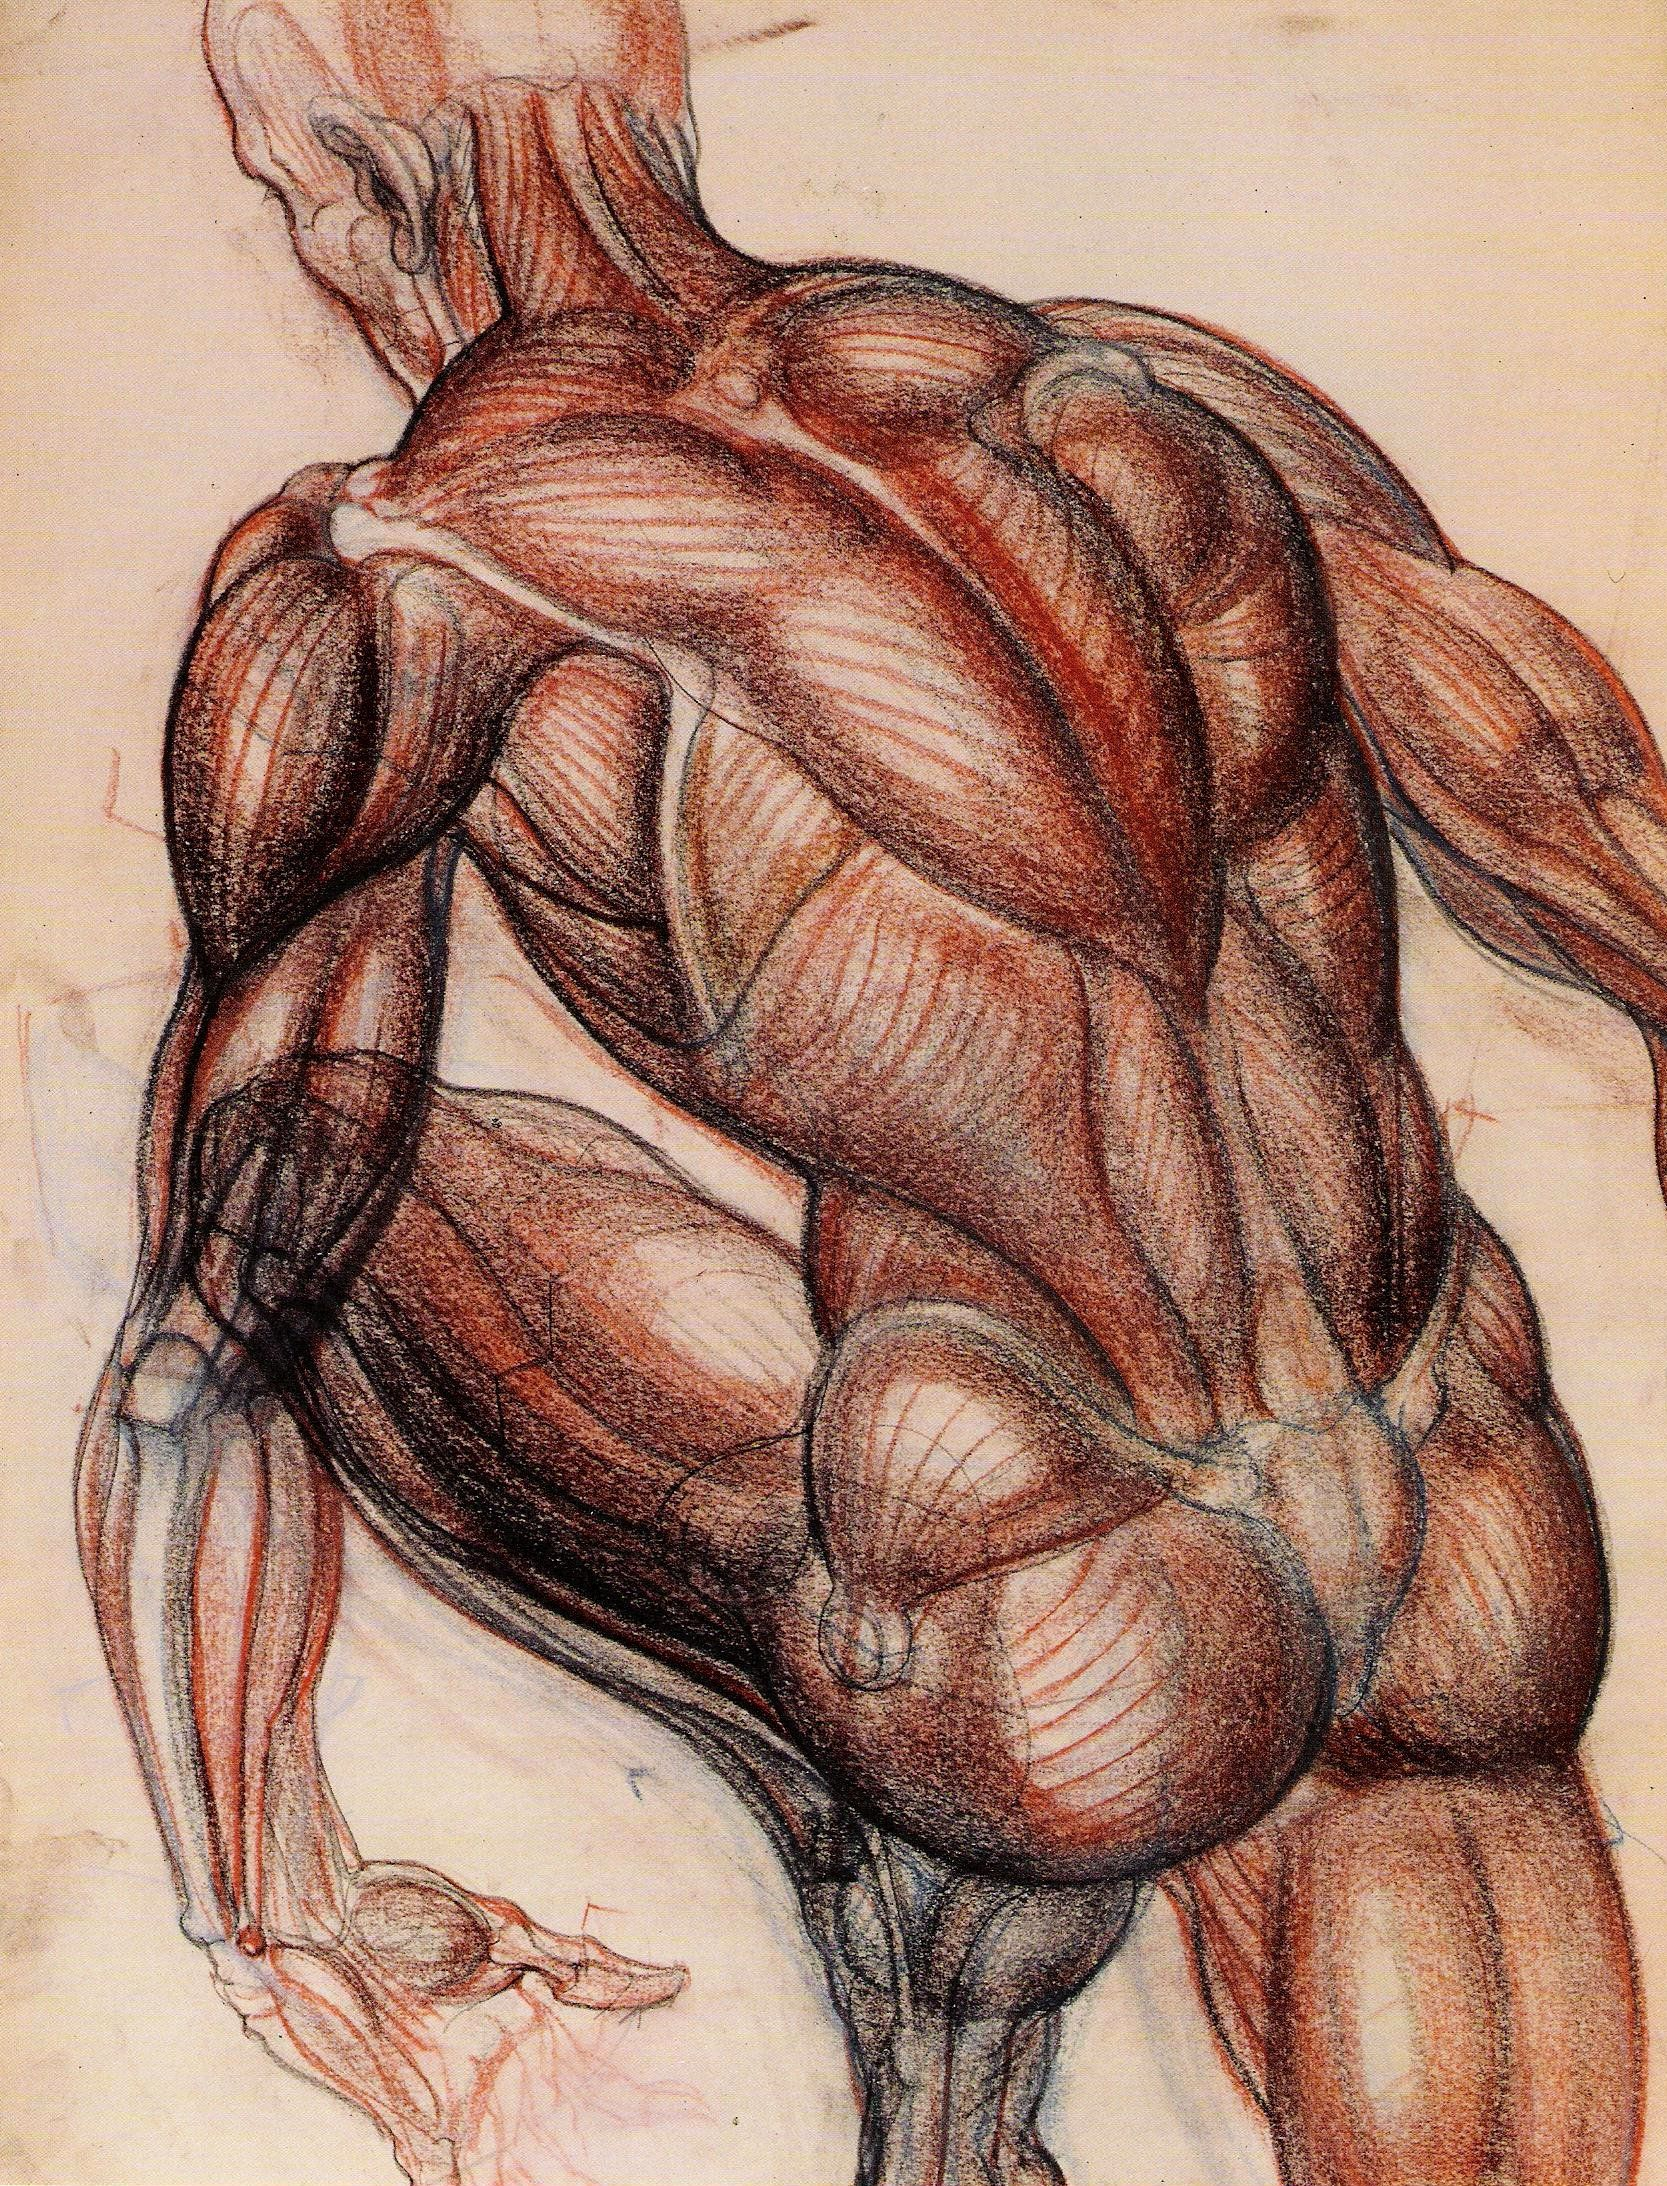 Burne Hogarth | AnatoRef - Art Anatomy & Reference | Pinterest ...